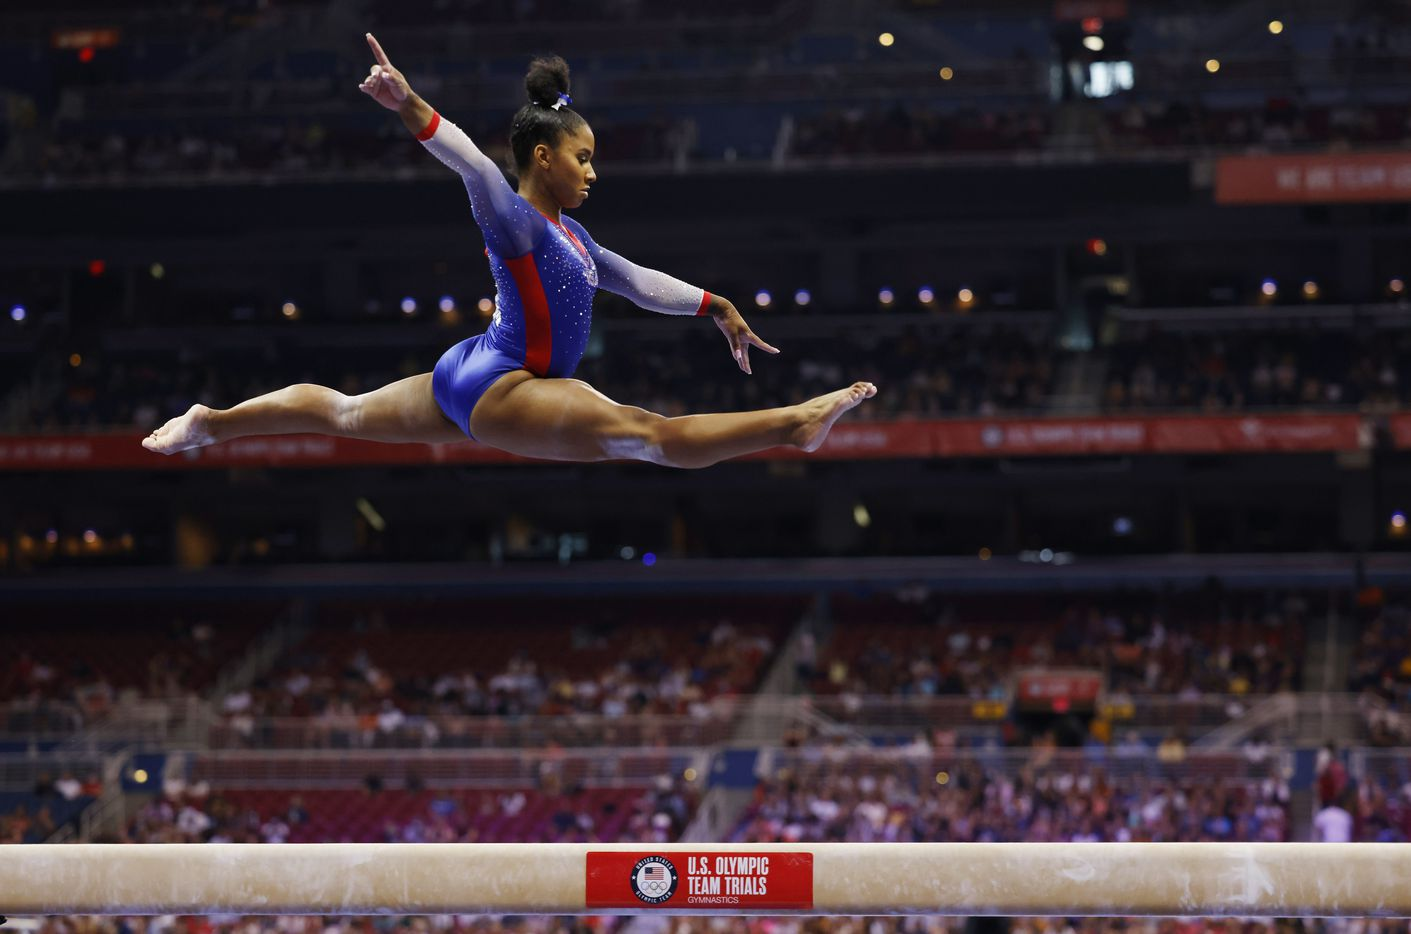 Jordan Chiles of World Champions competes on the balance beam during day 1 of the women's 2021 U.S. Olympic Trials at America's Center on Friday, June 25, 2021 in St Louis, Missouri.(Vernon Bryant/The Dallas Morning News)